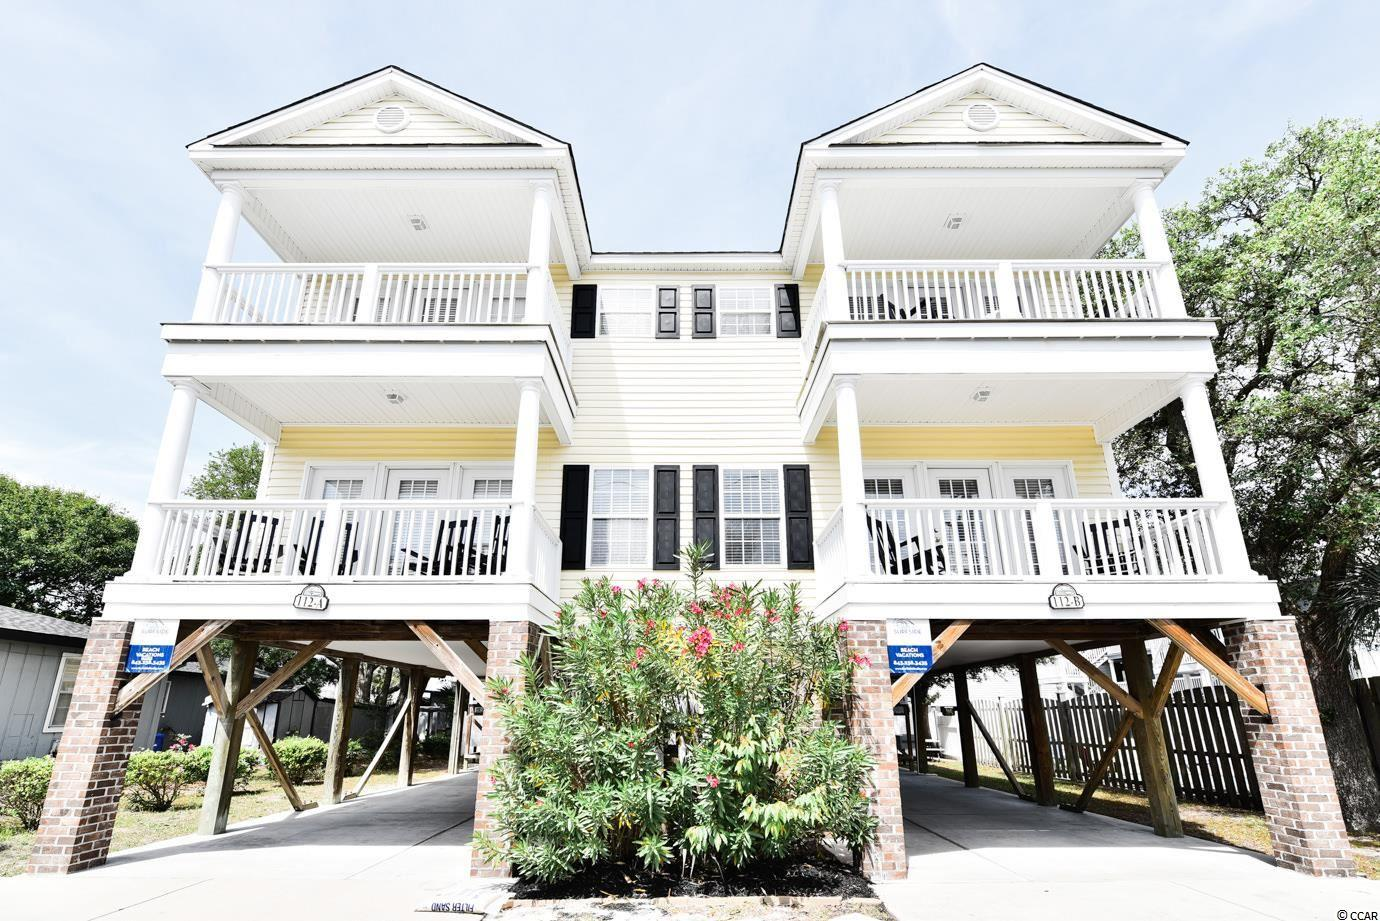 This 5 bedroom/ 4.5 bath features an elevator and private pool! A very short walk to the ocean, it is considered 3rd row as it's the first house on 10th Ave. This beach house comes fully furnished and is perfect for an investment, 2nd home, or a primary residence. It is turn key!!  Schedule your showing, it won't last long!